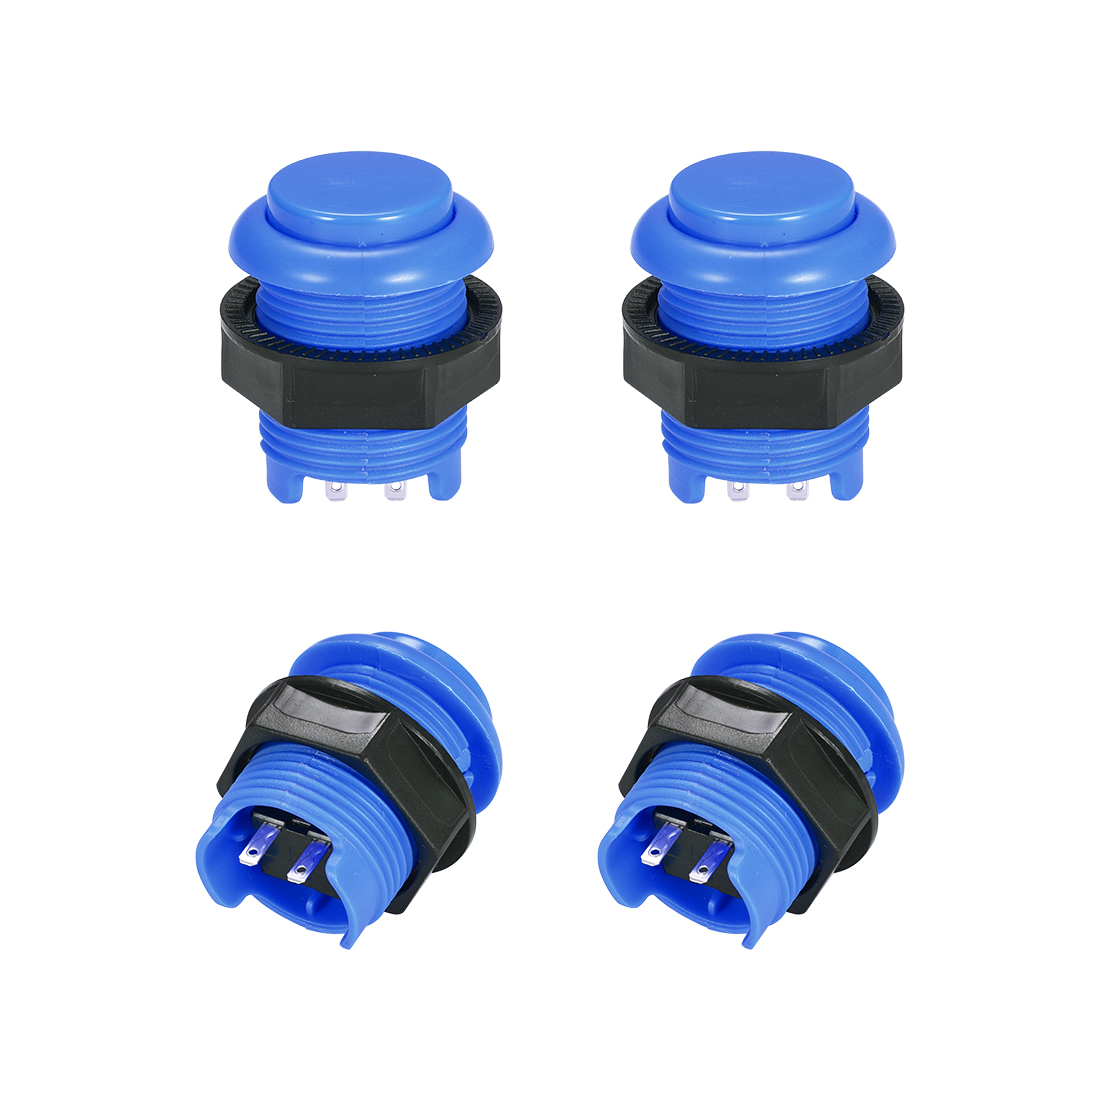 M28 Momentary Game Push Button Switch for Arcade Video Games Blue 4pcs